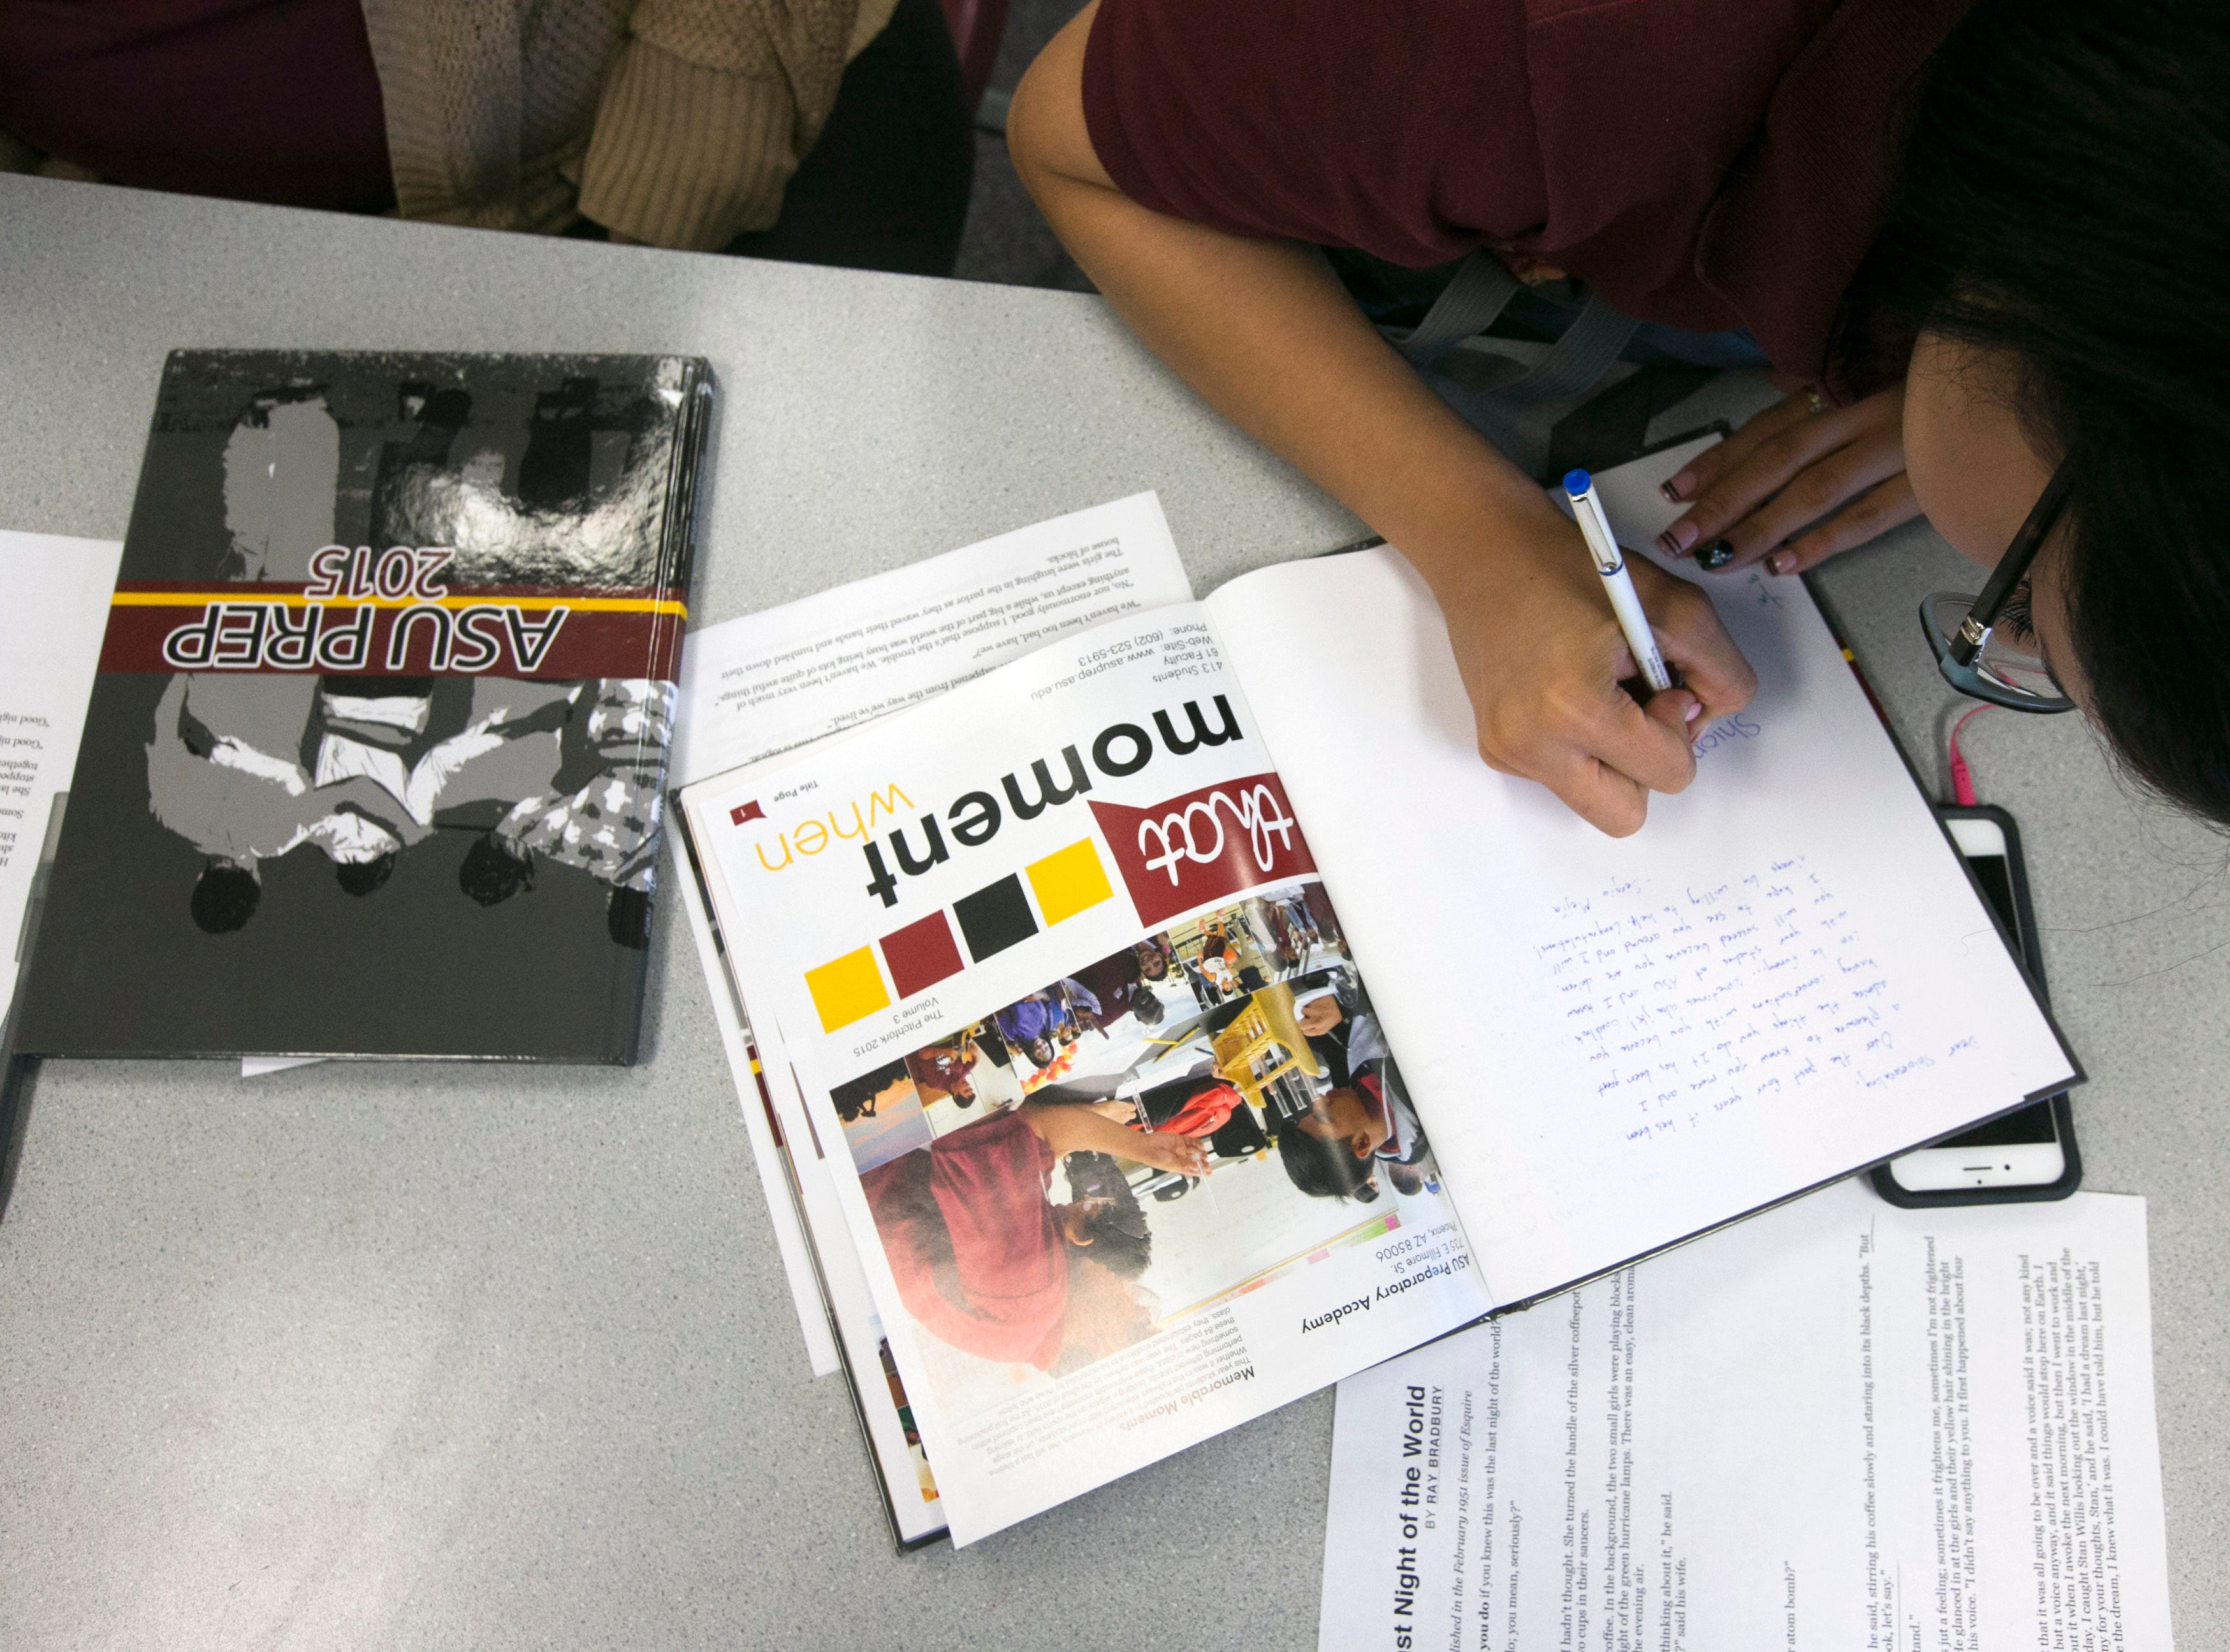 ASU Preparatory Academy senior Cecelia Moreno, 18, signs a yearbook at ASU Preparatory Academy in Phoenix on May 26, 2015.